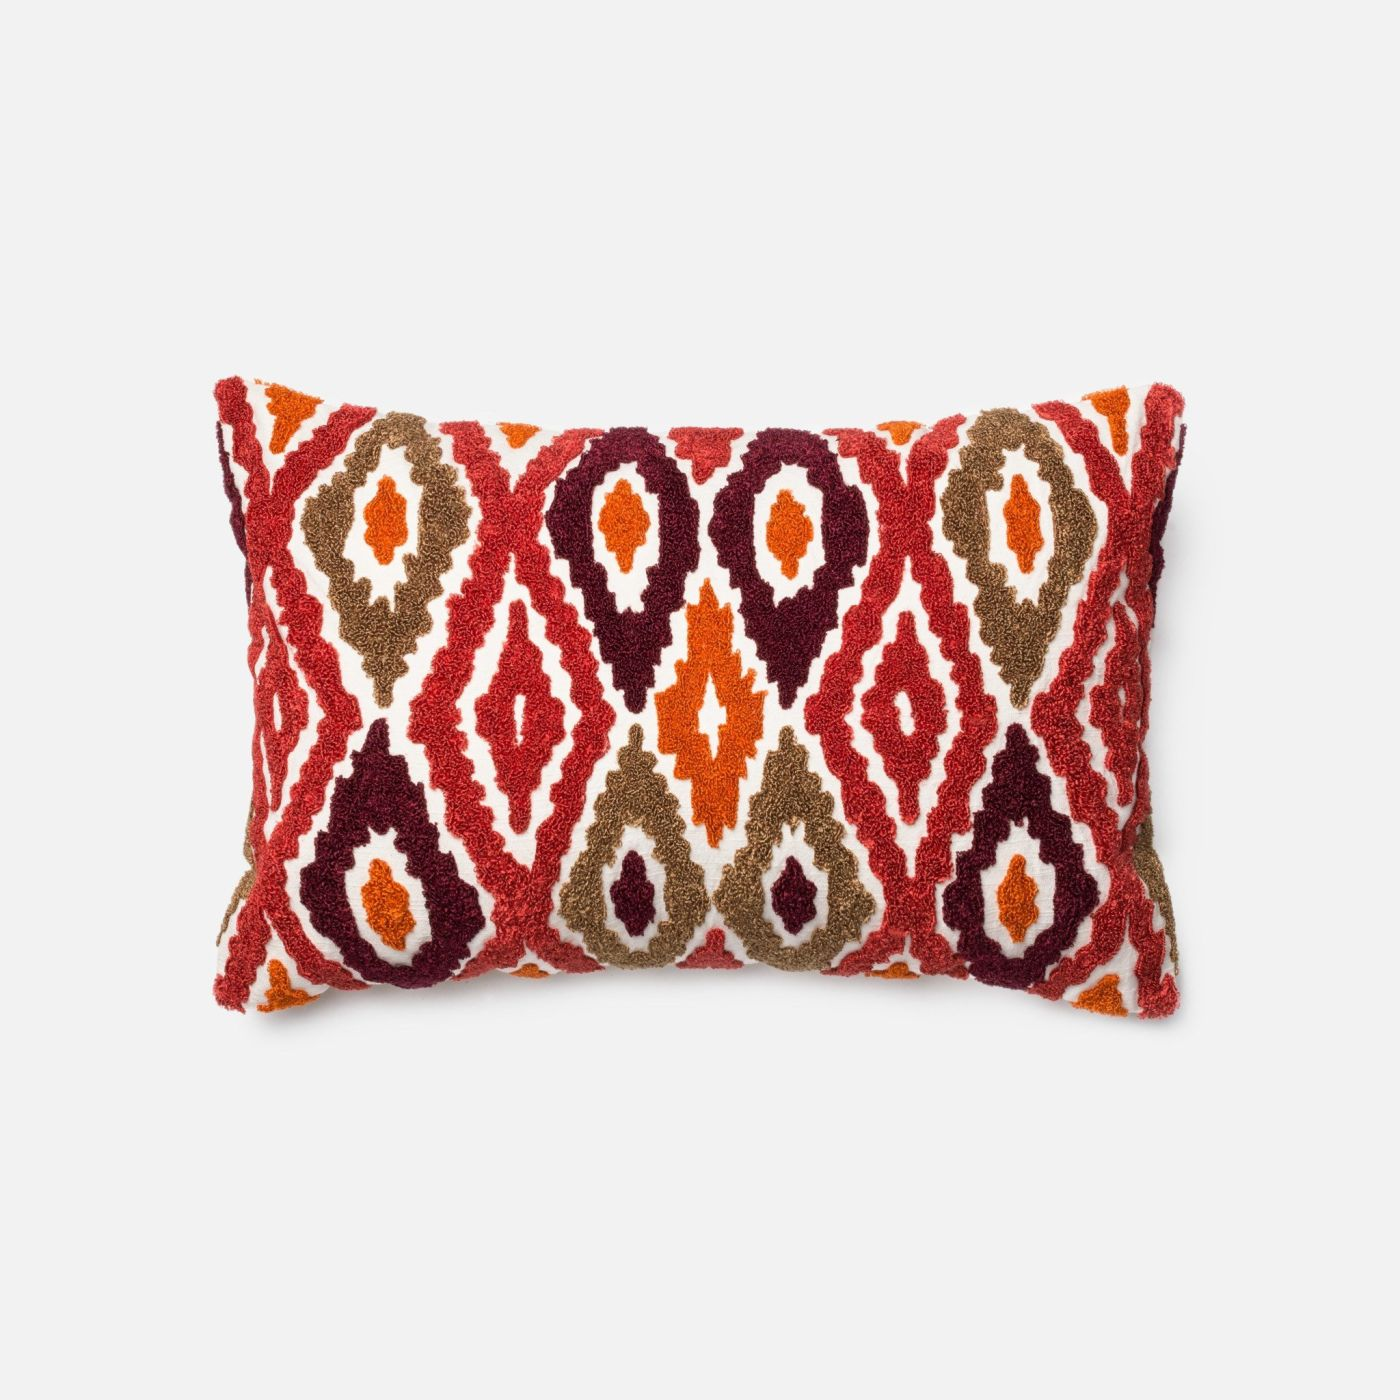 Throw Pillow Warehouse : Loloi Rugs Loloi Red / Orange Decorative Throw Pillow (P0008) DSETP0008REORPIL5. Only $89.00 at ...